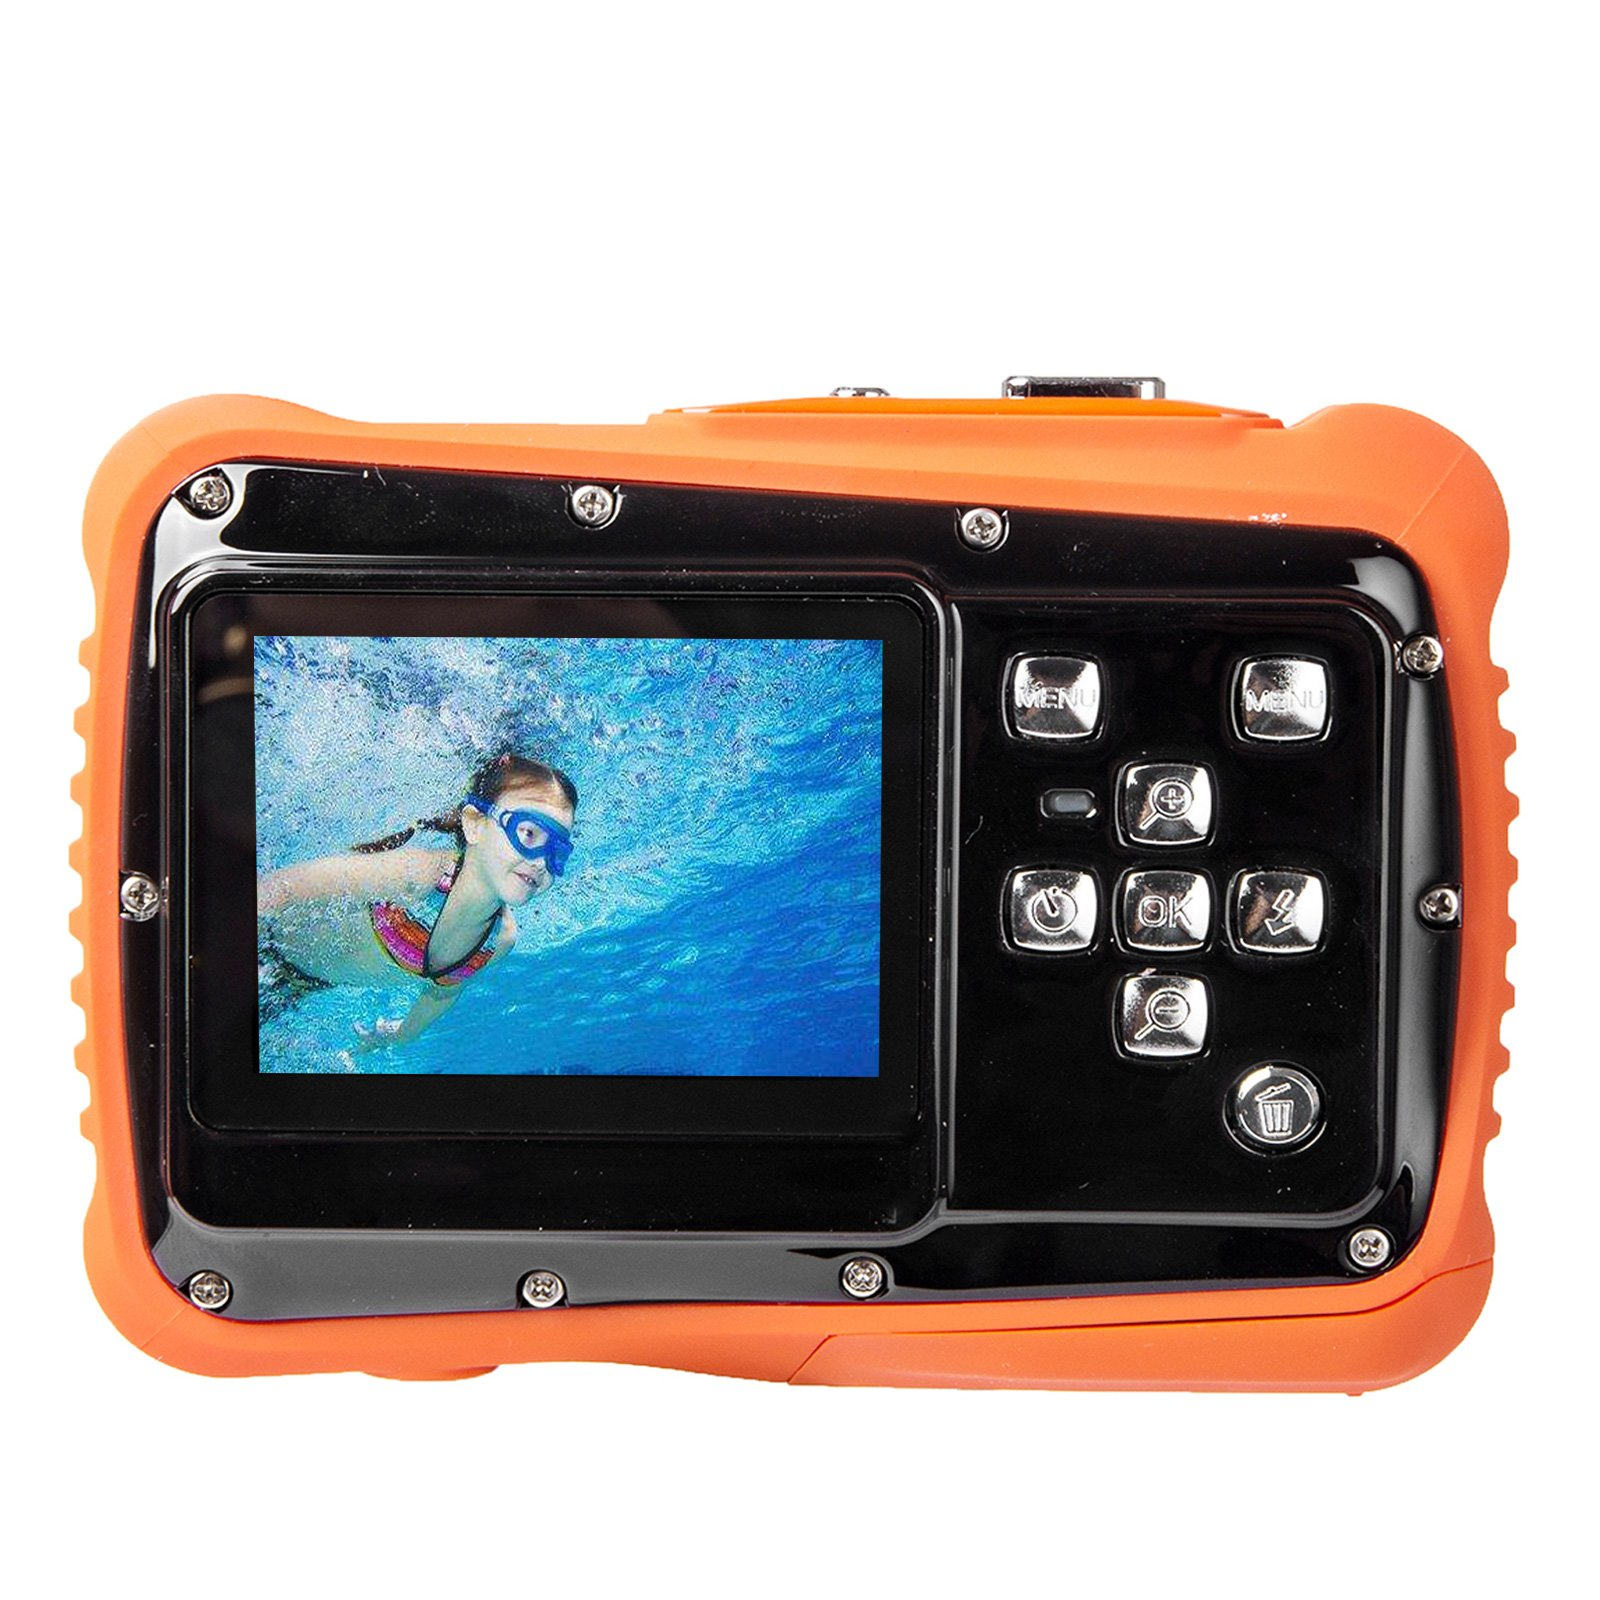 Digital Camera for Kids, Waterproof Sport Action Camera Camcorder Cam with 2.0'' LCD Screen,TOP-MAX Super HD Underwater Digital Video Camera Record Cam for Sports Swimming Diving and Beaching by TOP-MAX (Image #7)